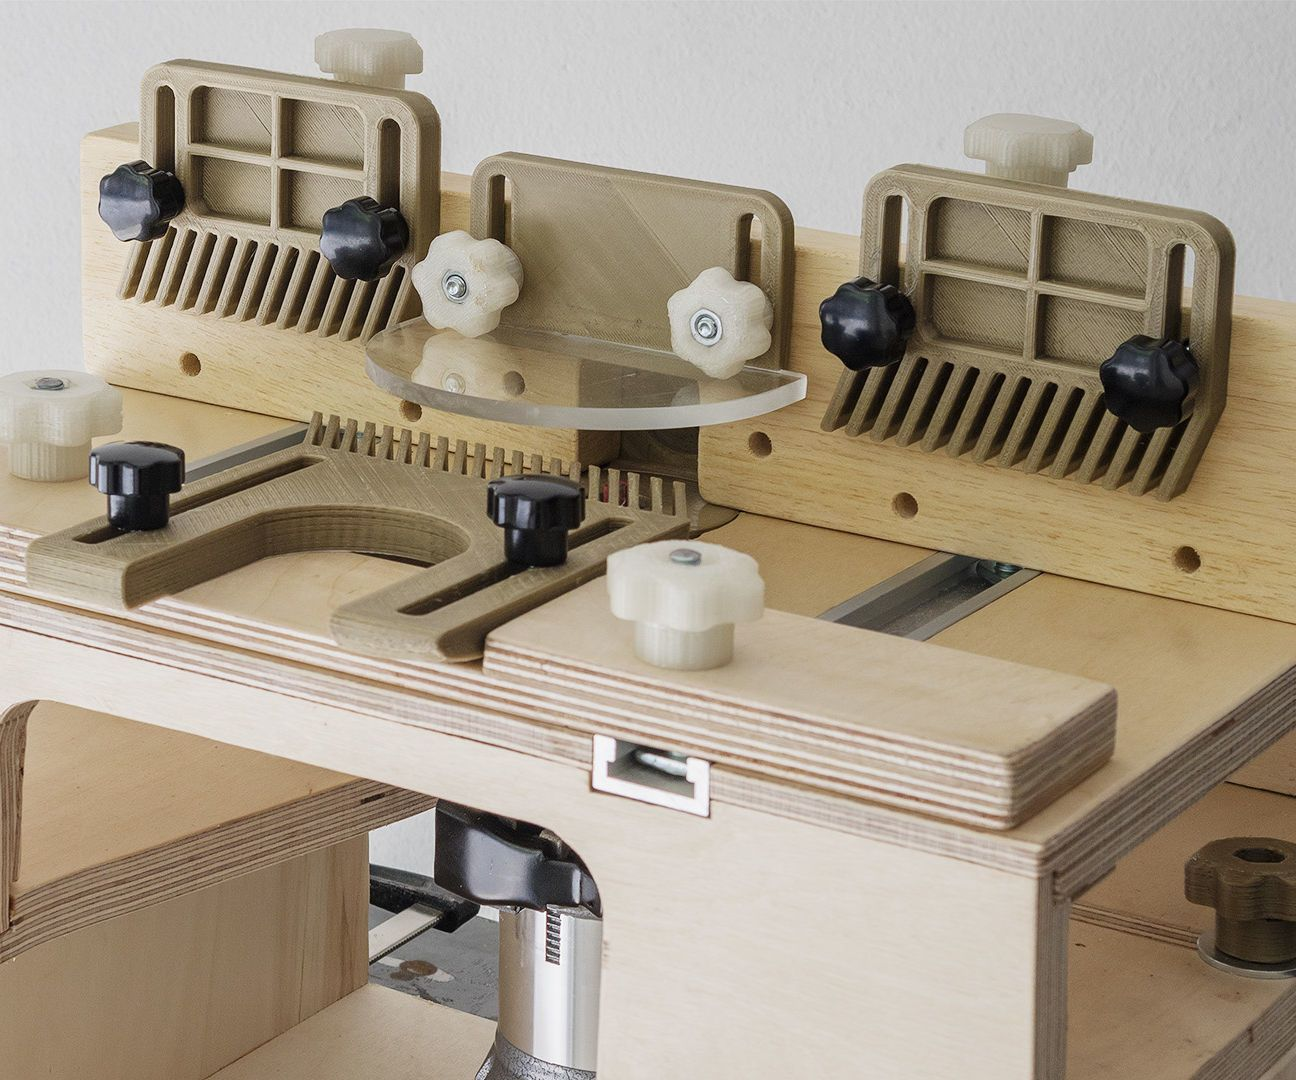 Homemade router table top  Build Router Table Fence  Router Tips Jigs and Fixtures